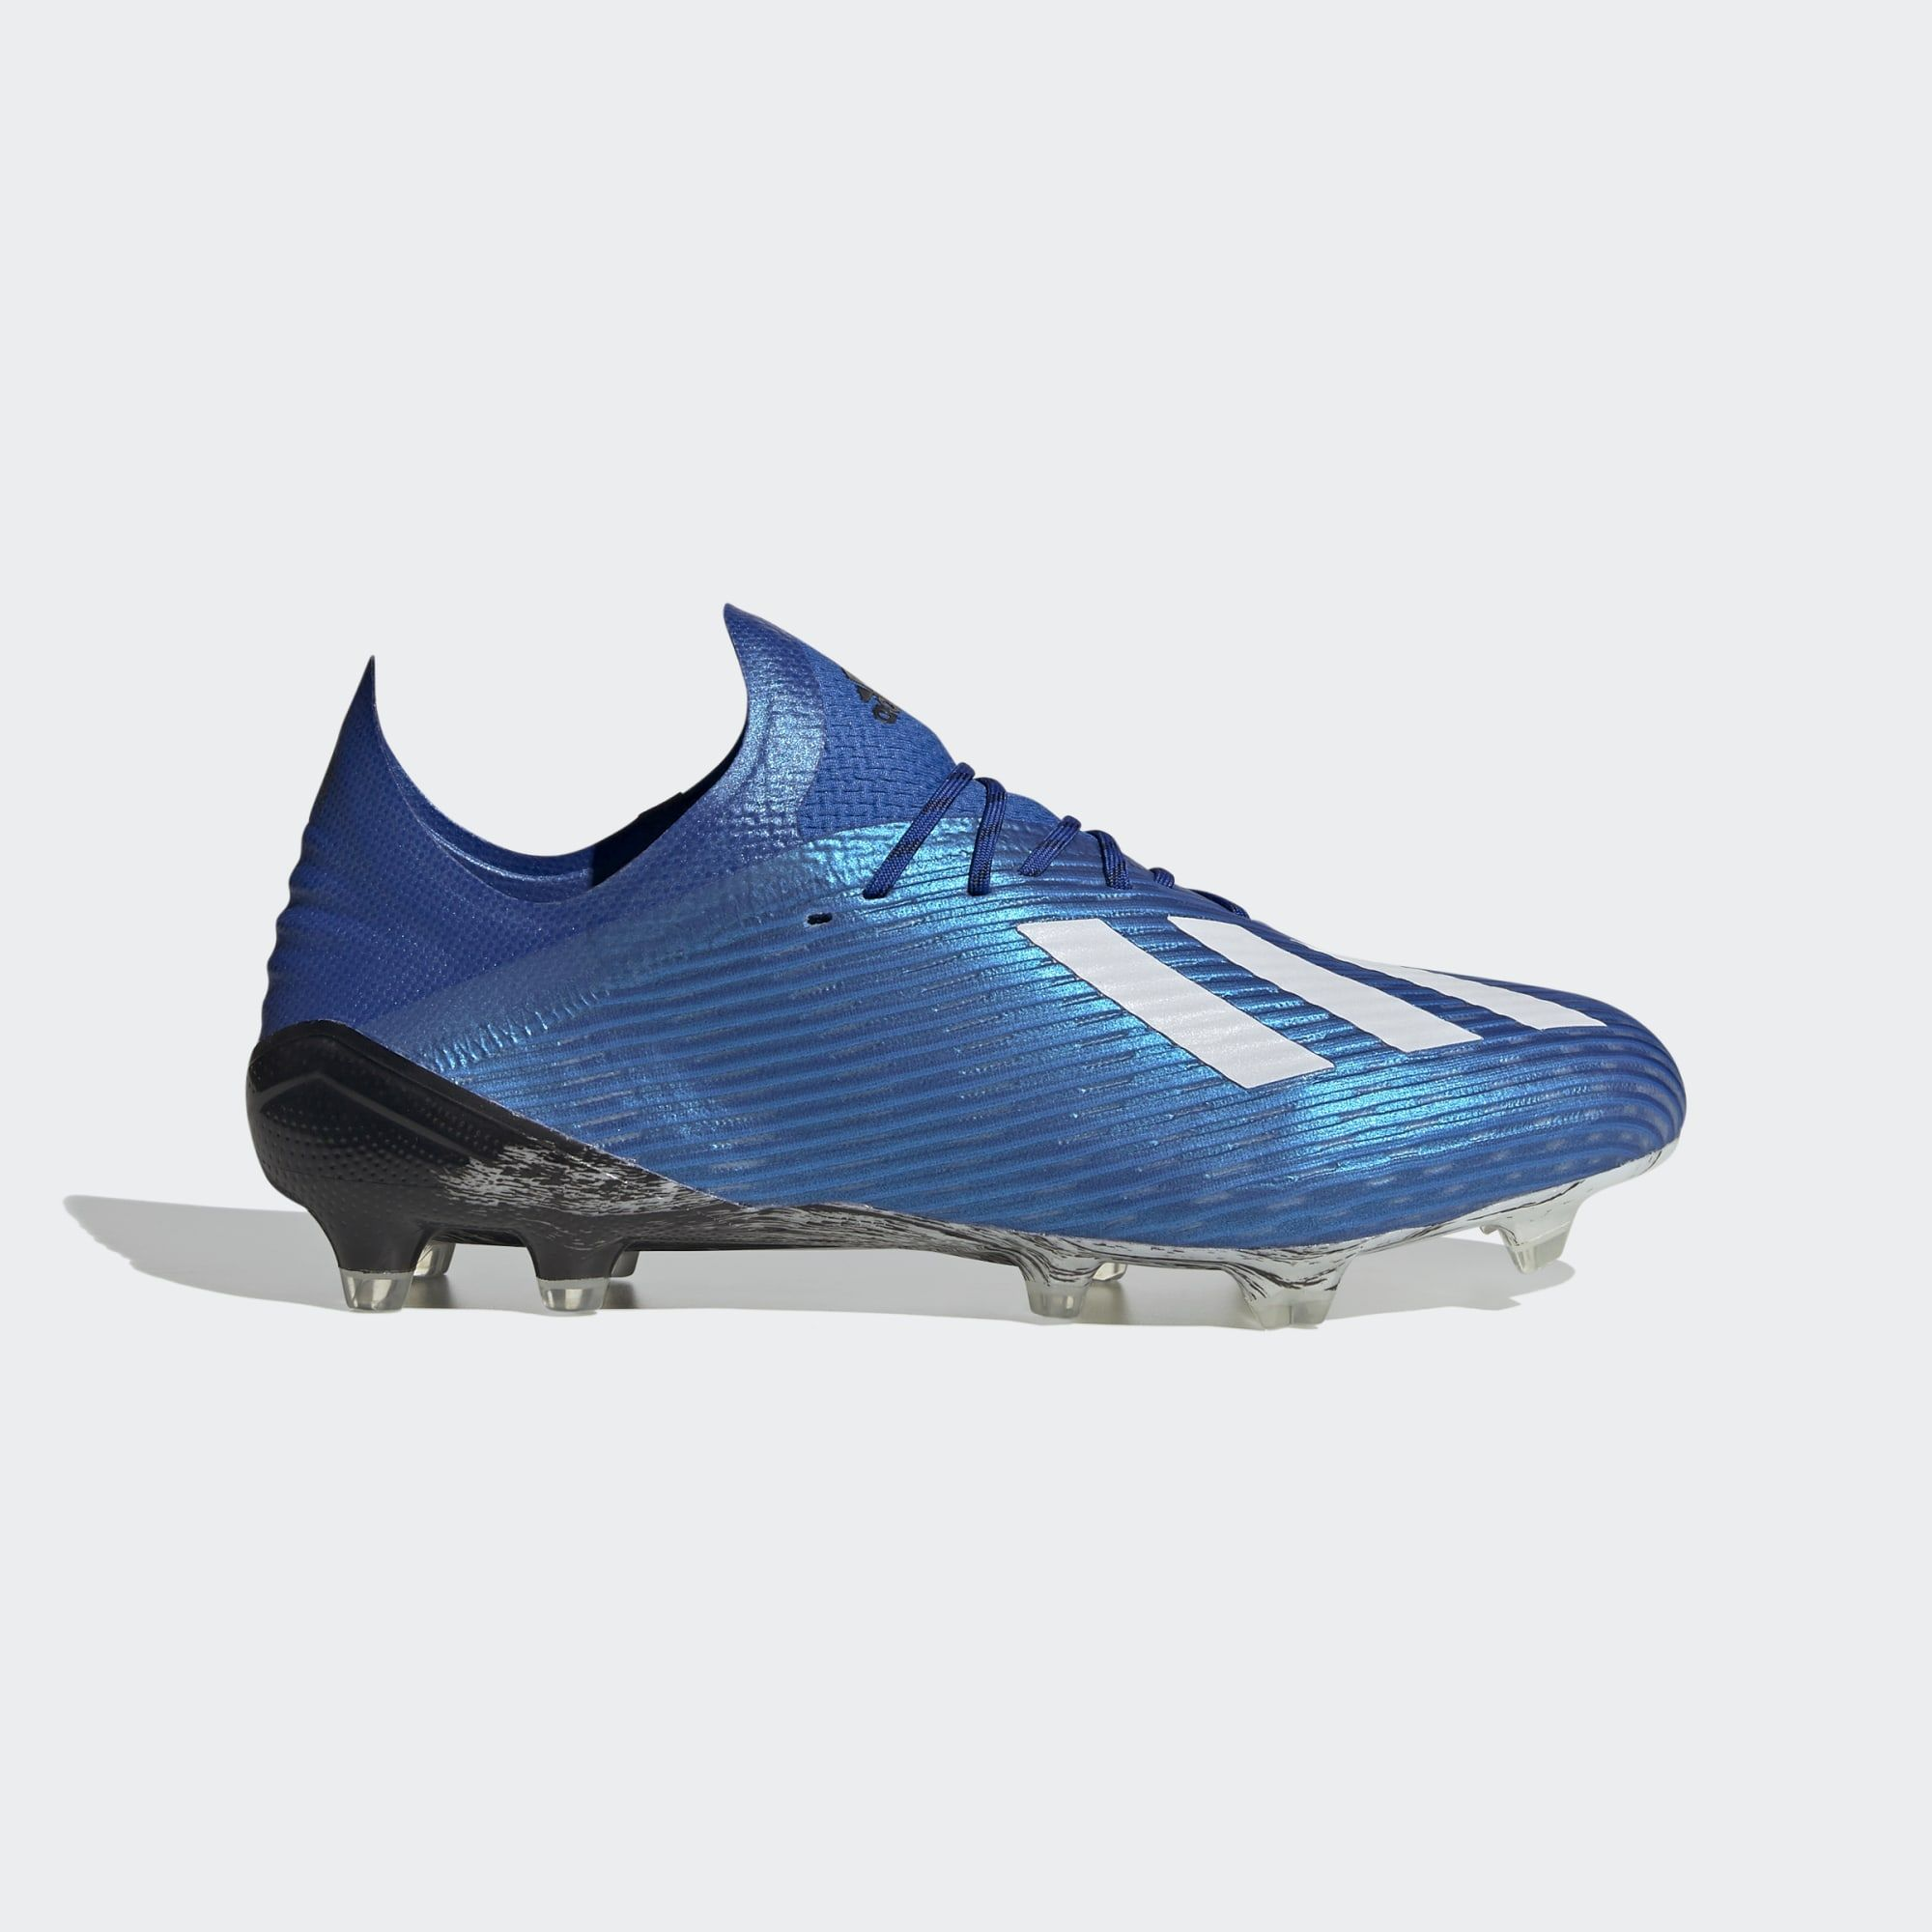 Adidas X 19 1 Mutator Firm Ground Boots Team Royal Blue Cloud White Core Black Adidasfootball In 2020 Football Boots Mens Football Boots Blue Adidas